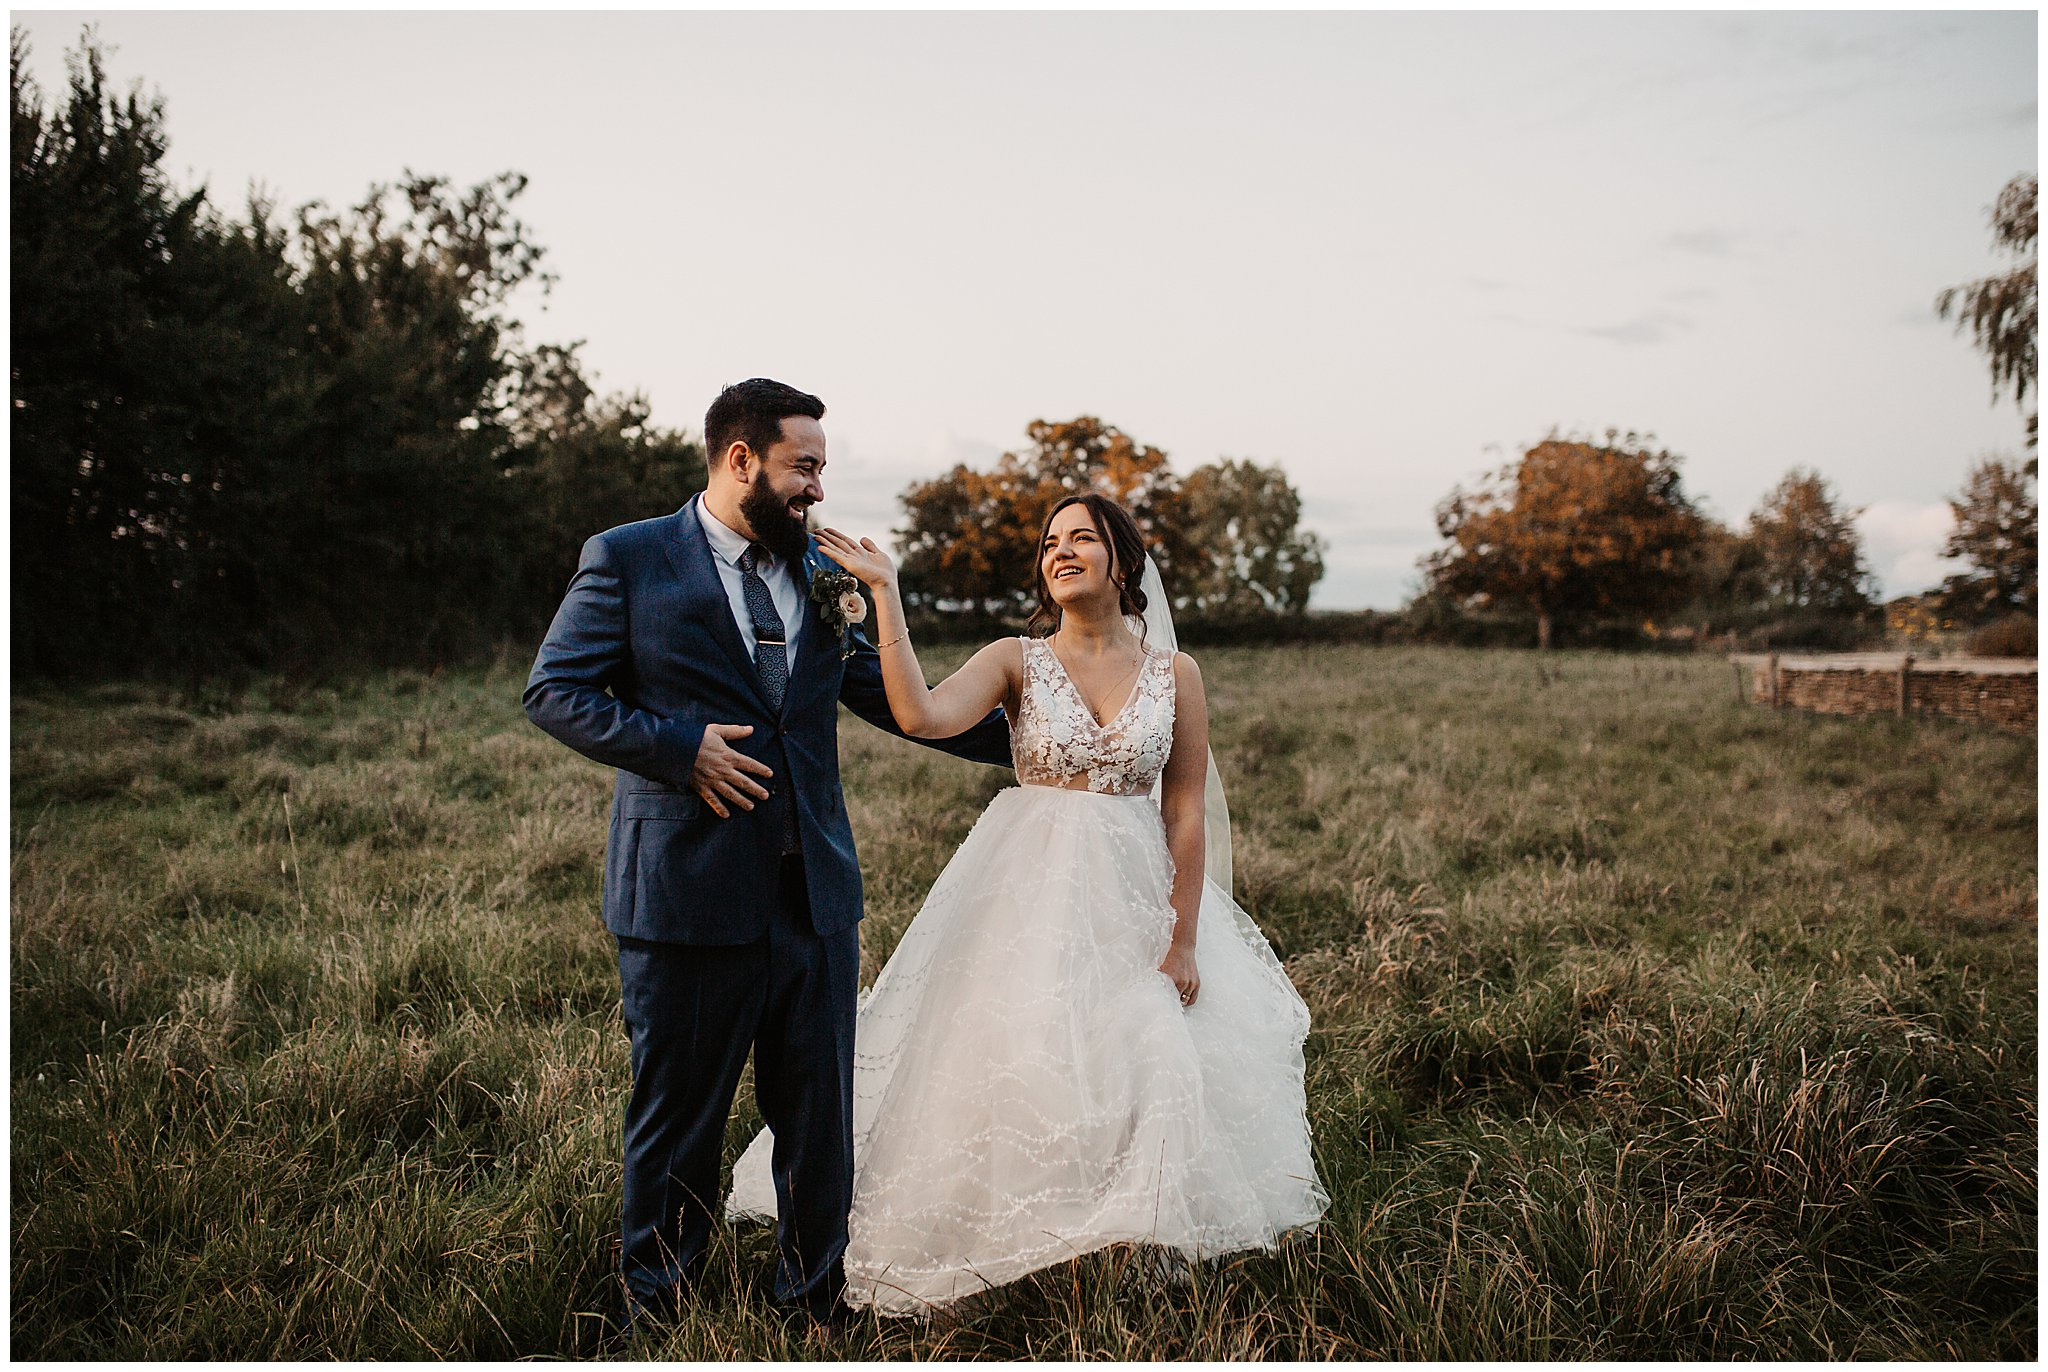 Max & Ksenia Autumnal Wiltshire Wedding-813.jpg